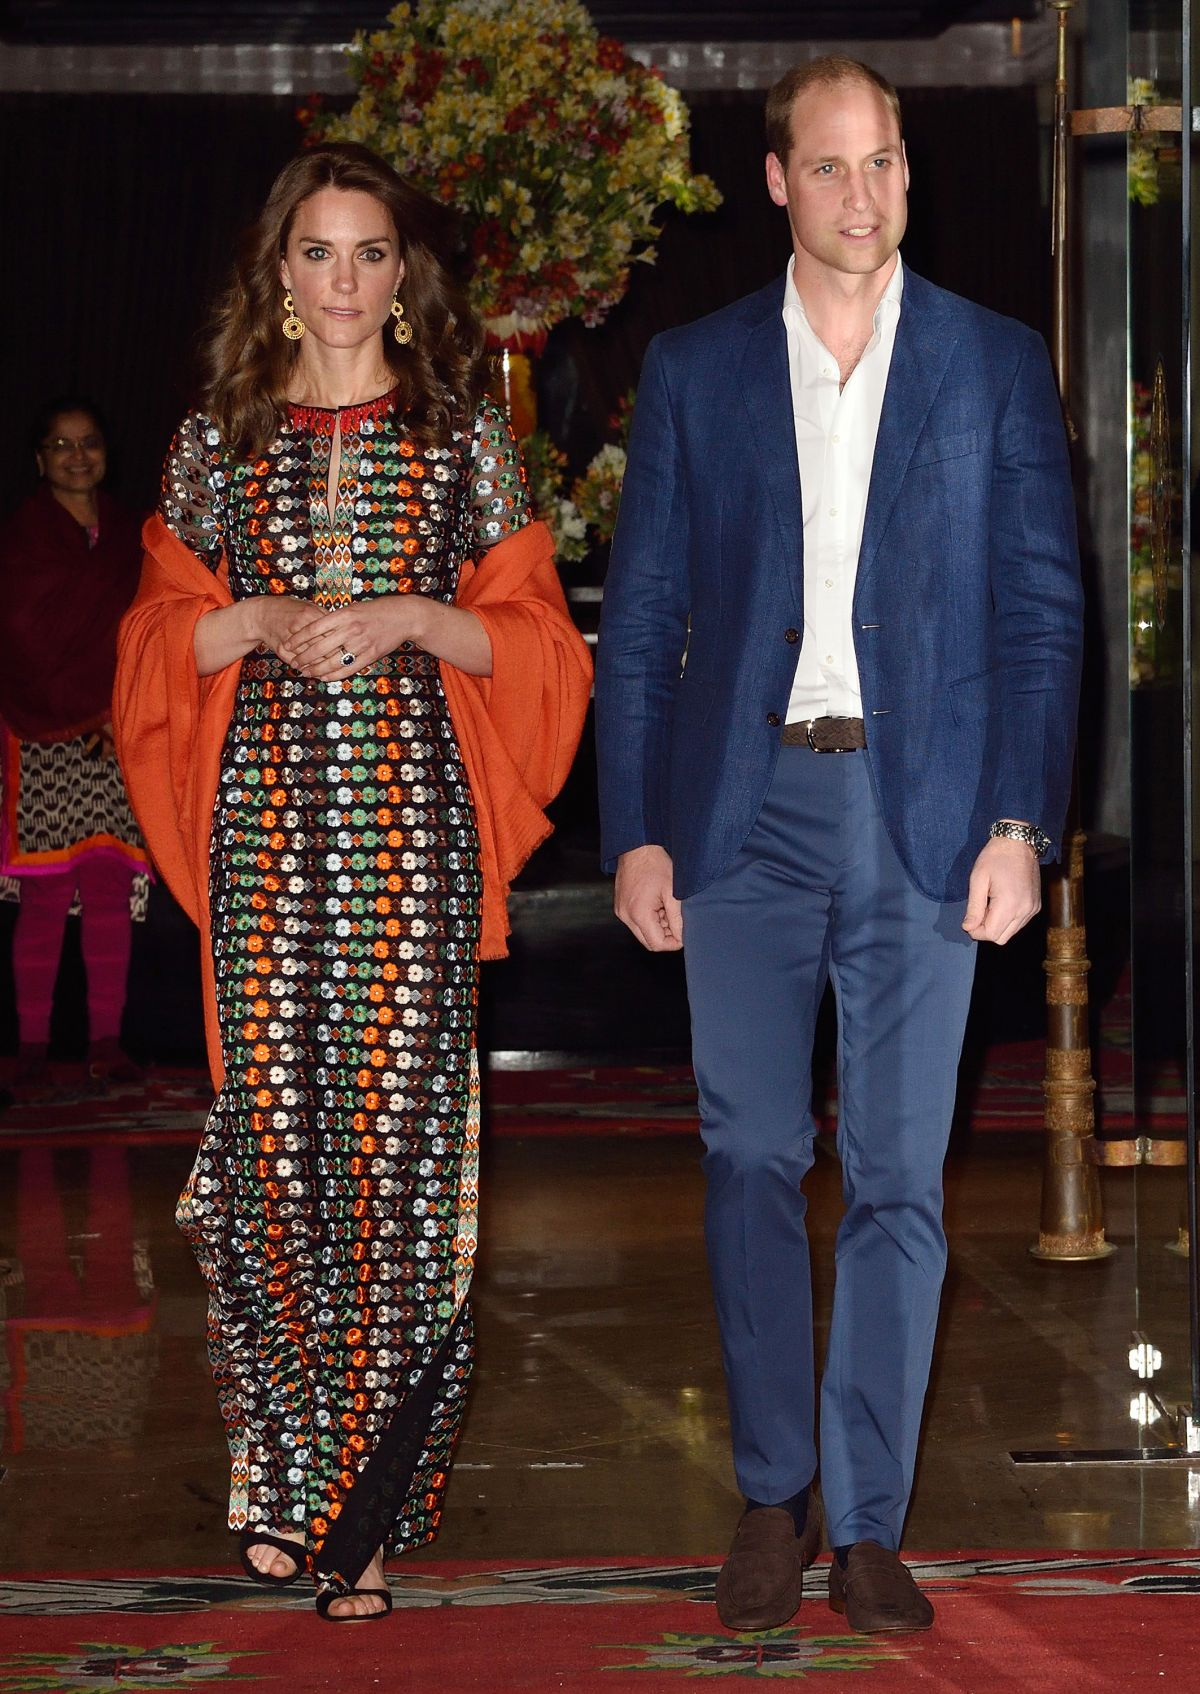 KATE MIDDLETON at a Private Dinner at Lingkana Palace in Thimphu 04/14/2016